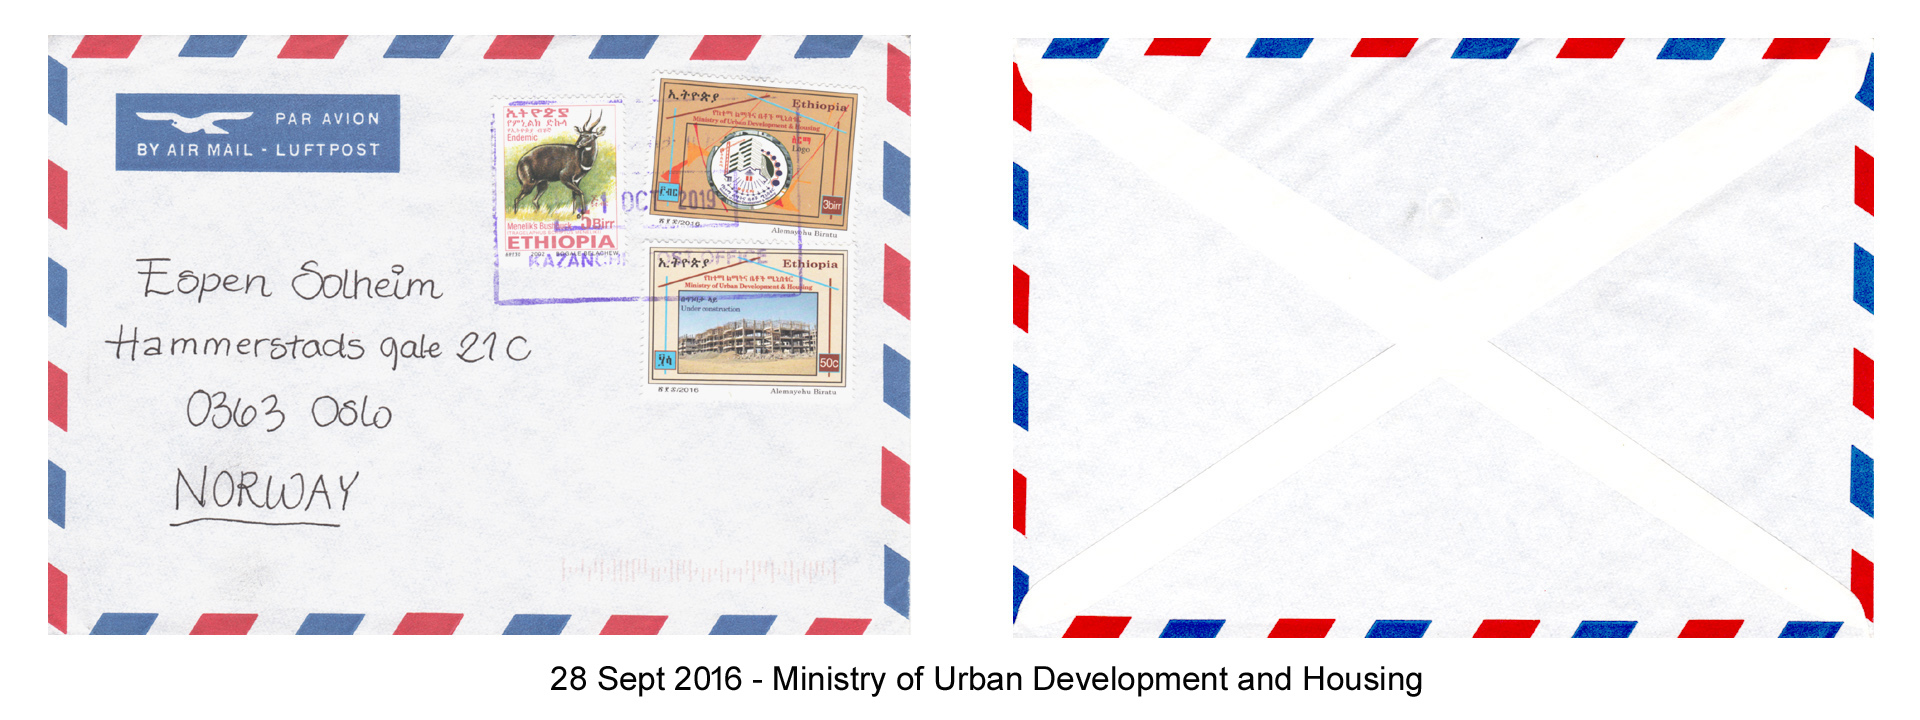 20160928 - Ministry of Urban Development and Housing